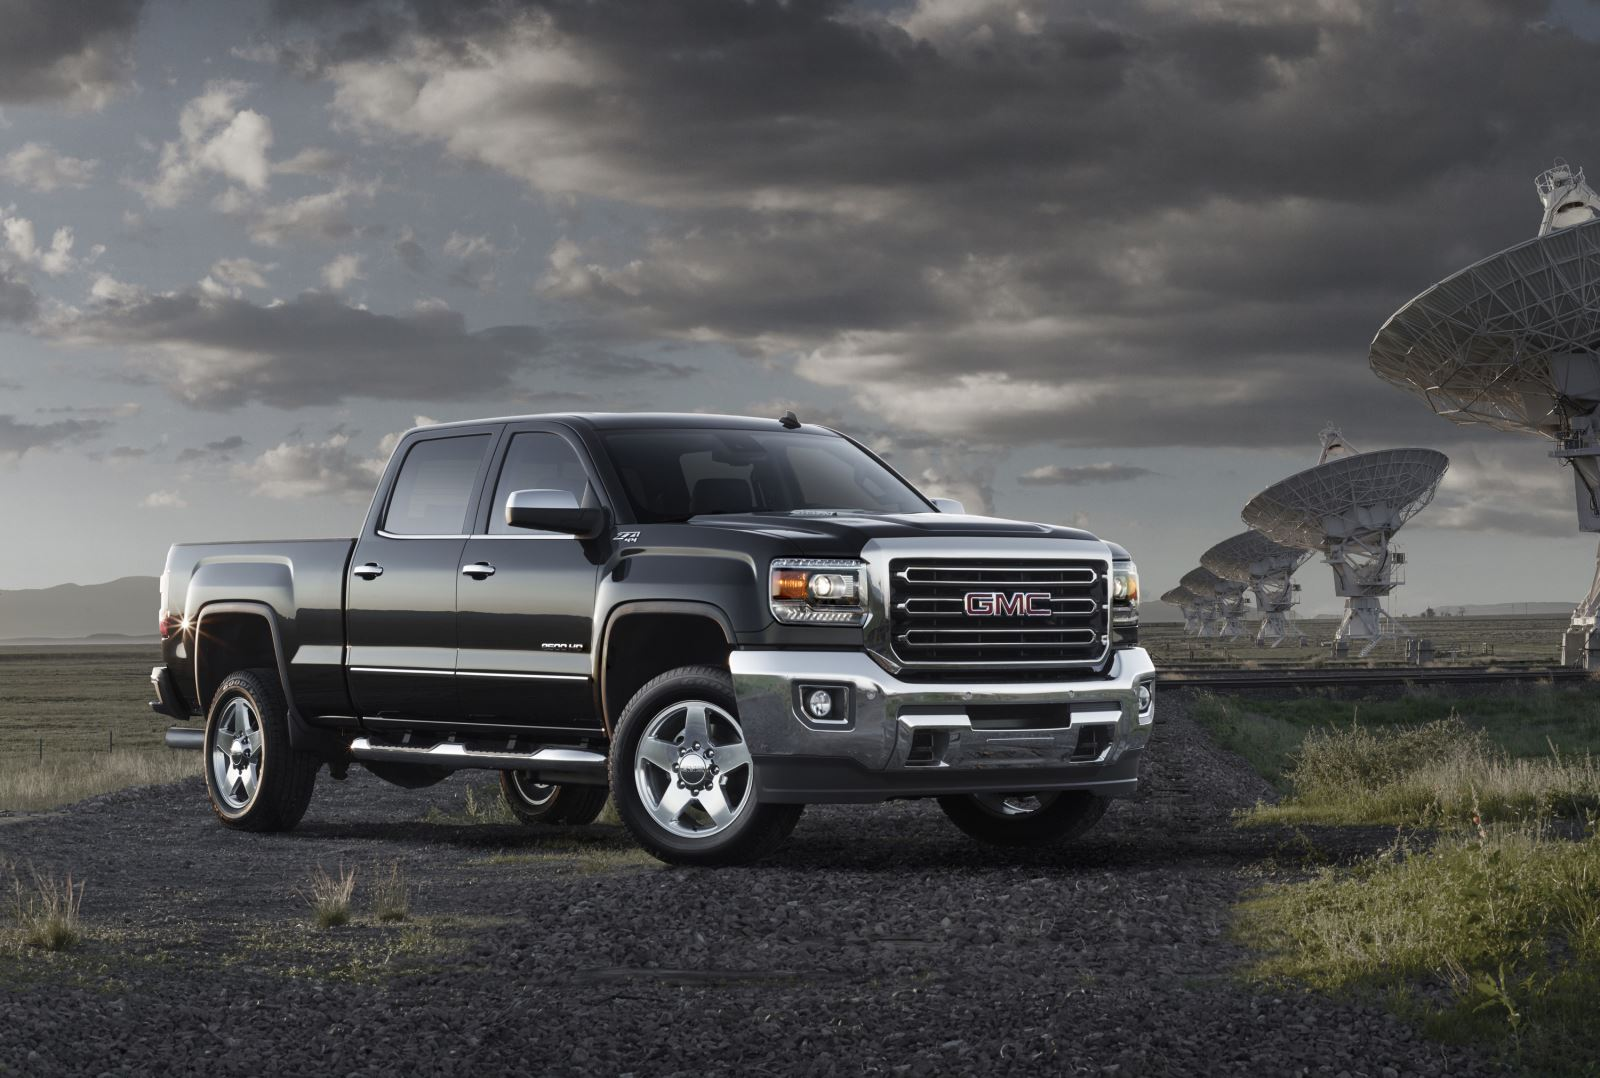 Suit Filed Against Gm Duramax And Isuzu Over Dpf Fuel Economy 02 Filter Replace Coal Diesel Emissions The Subject Of What Changes Modifications Truck Owners Can Make To Their Trucks Is Still Alive Well Should Be A